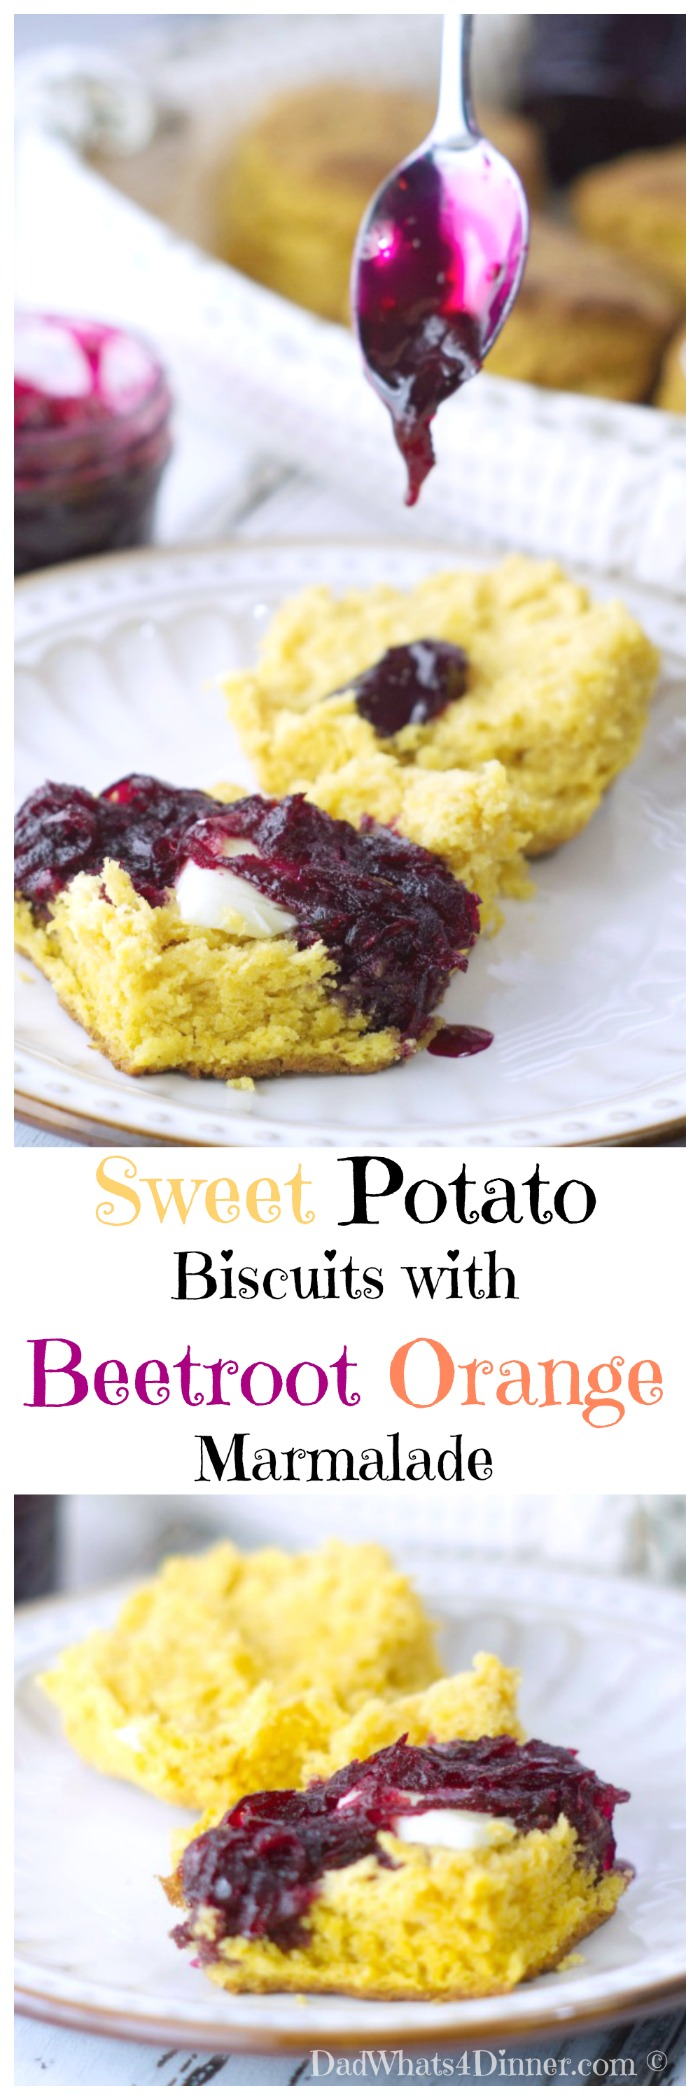 Sweet Potato Biscuits with Beetroot Orange Marmalade probably isn't what your mother had in mind when she told you to eat your veggies.